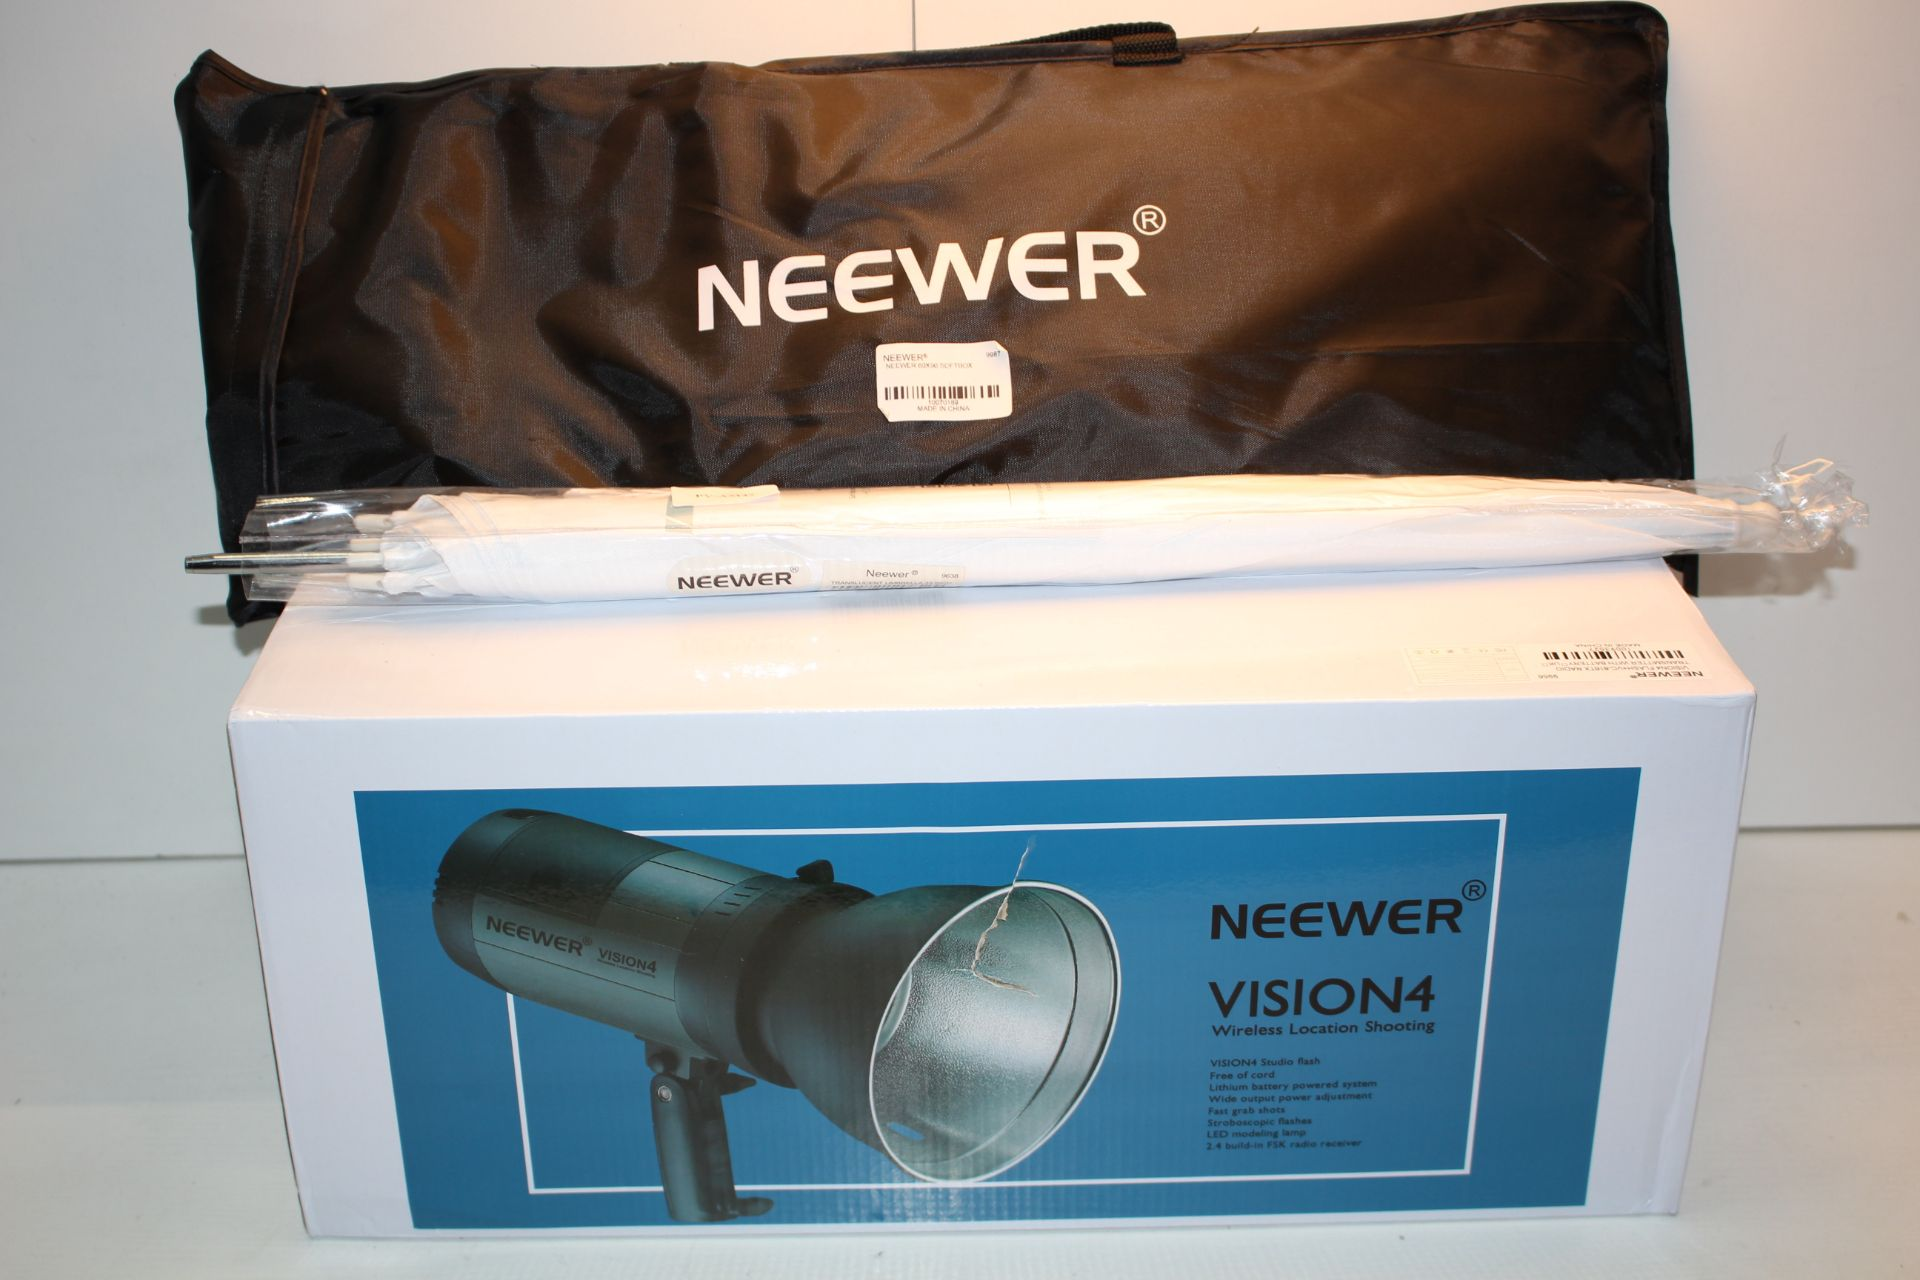 3X ASSORTED ITEMS TO INCLUDE NEEWAR VISION 4 WIRELESS LOCATION SHOOTING RRP £249.30Condition